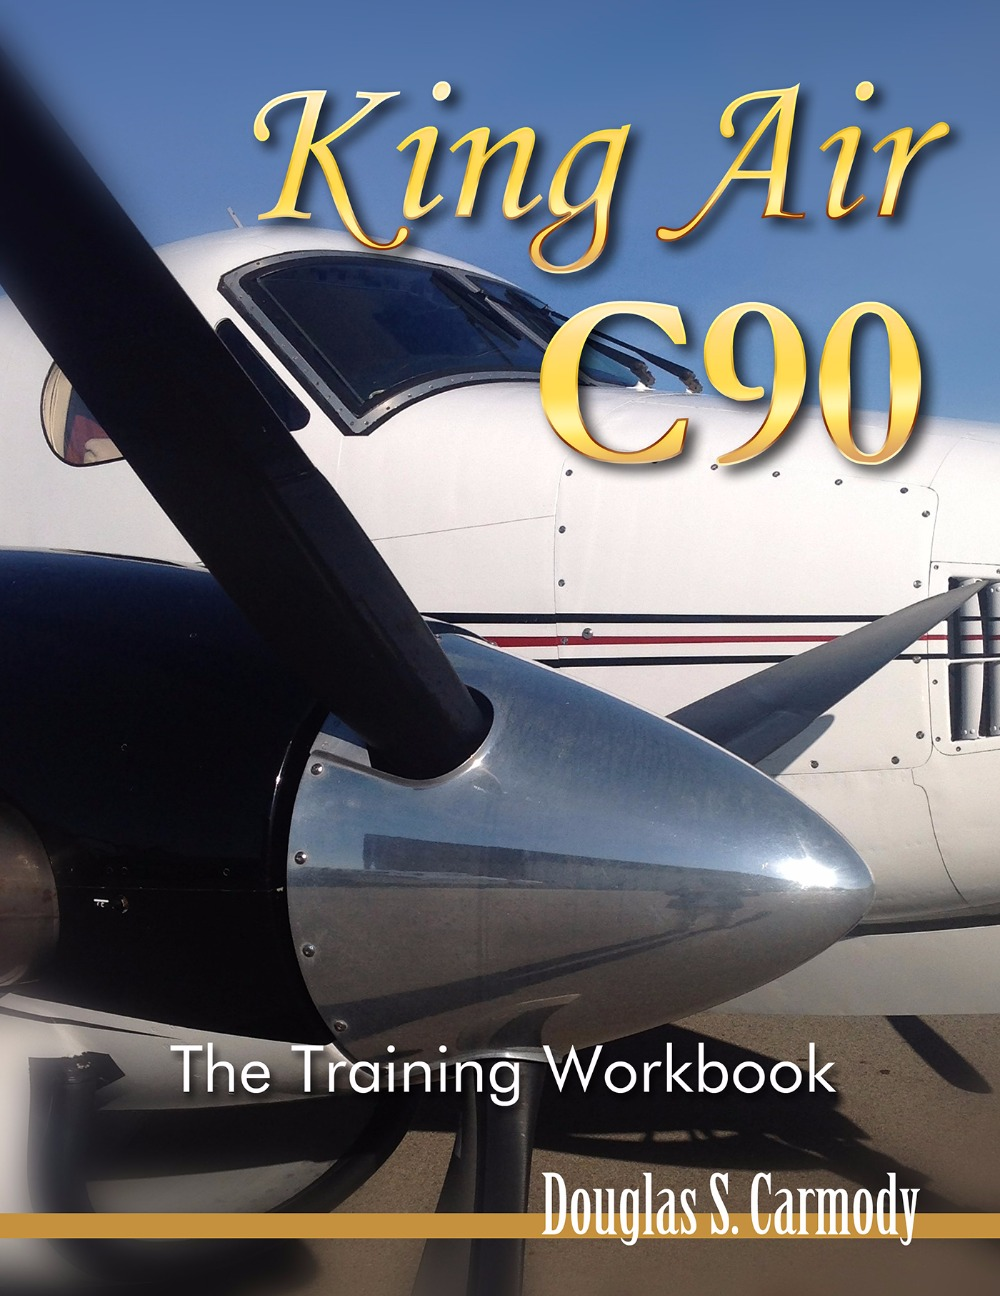 King Air C90 - The Training Workbook